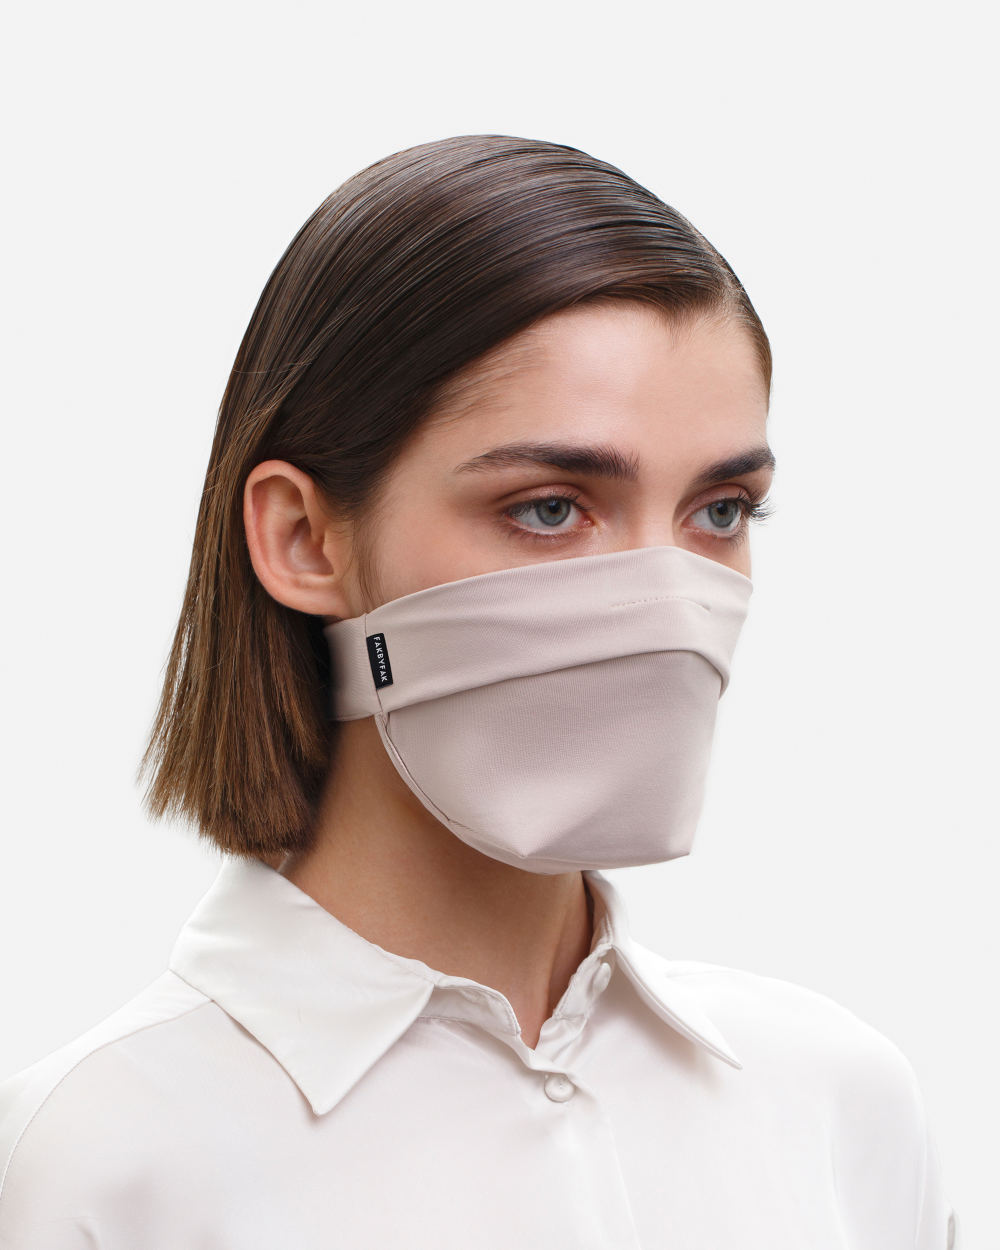 The Vega. Ear Strap-Free High-End Protective Antibacterial (ATB-UV+) Face Mask. Beige